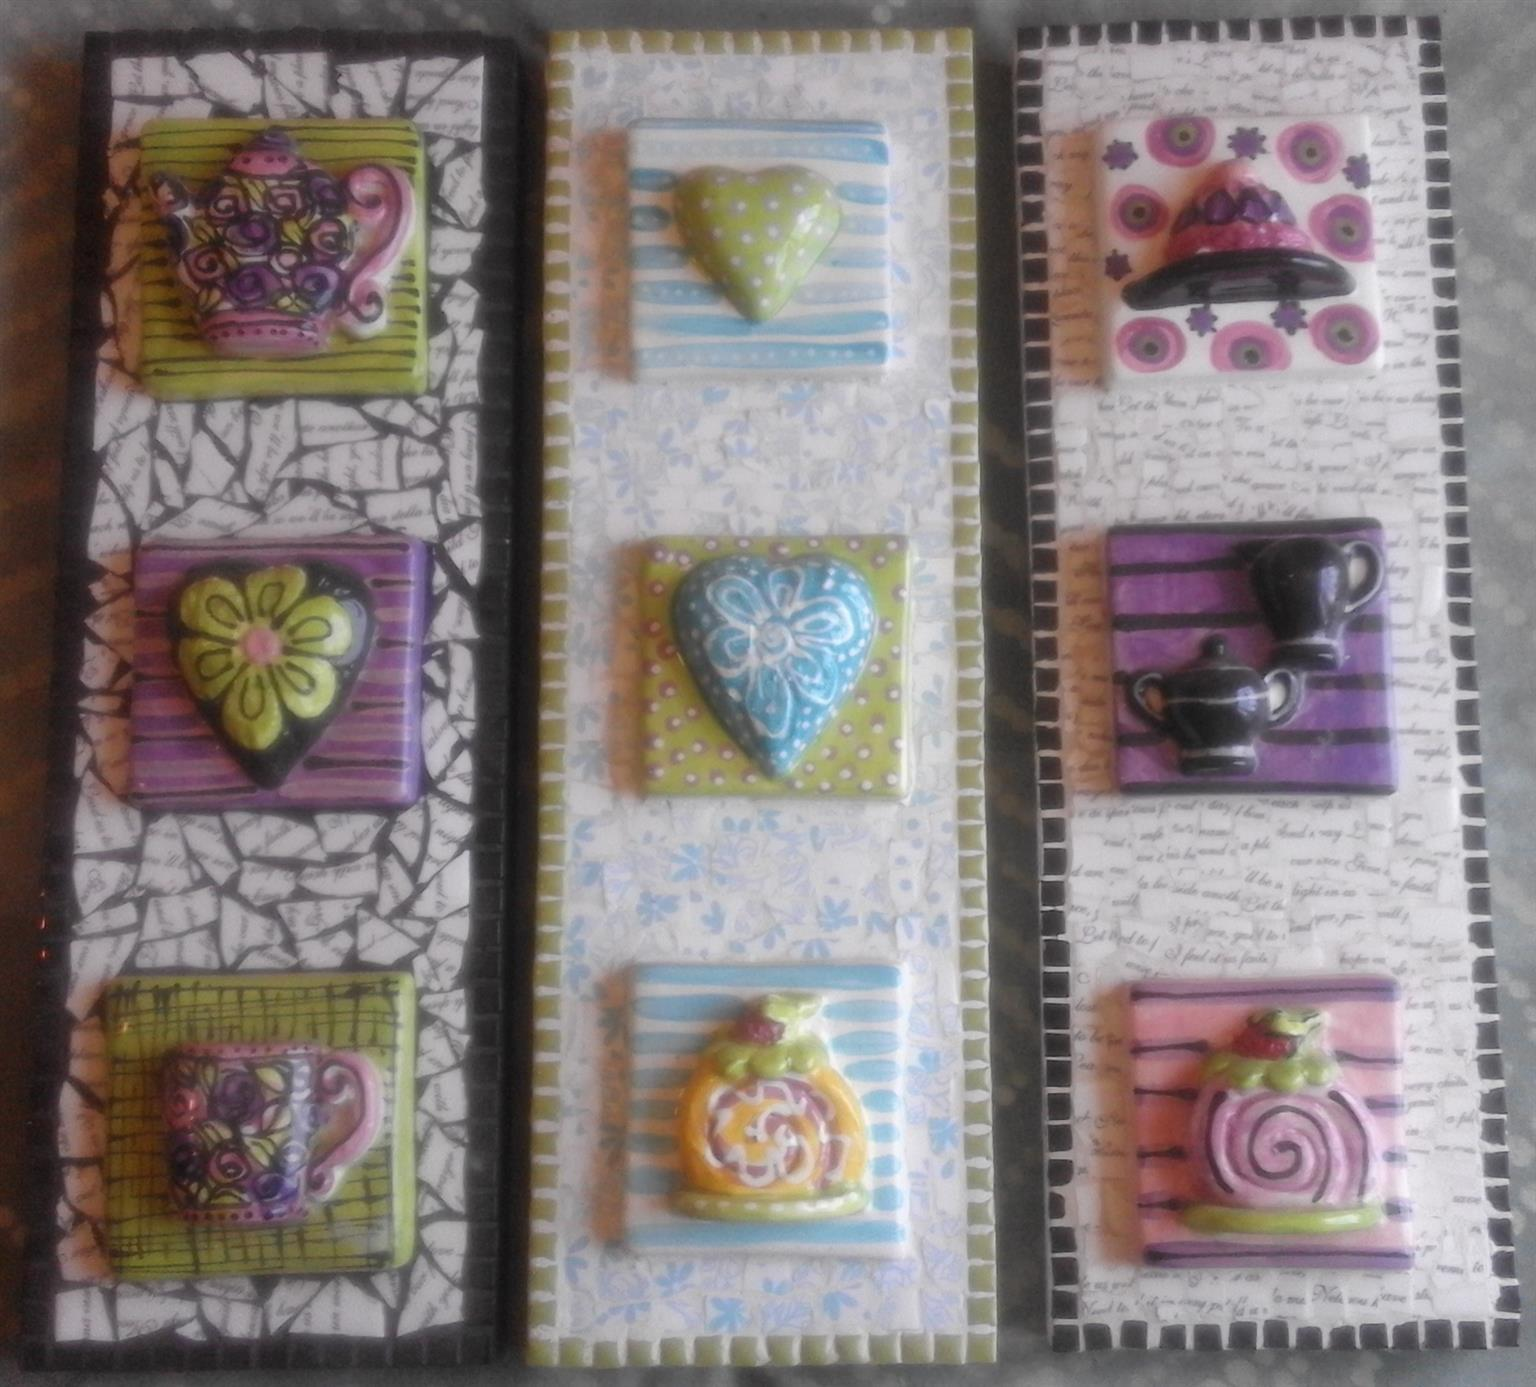 Mosaic wall decor items